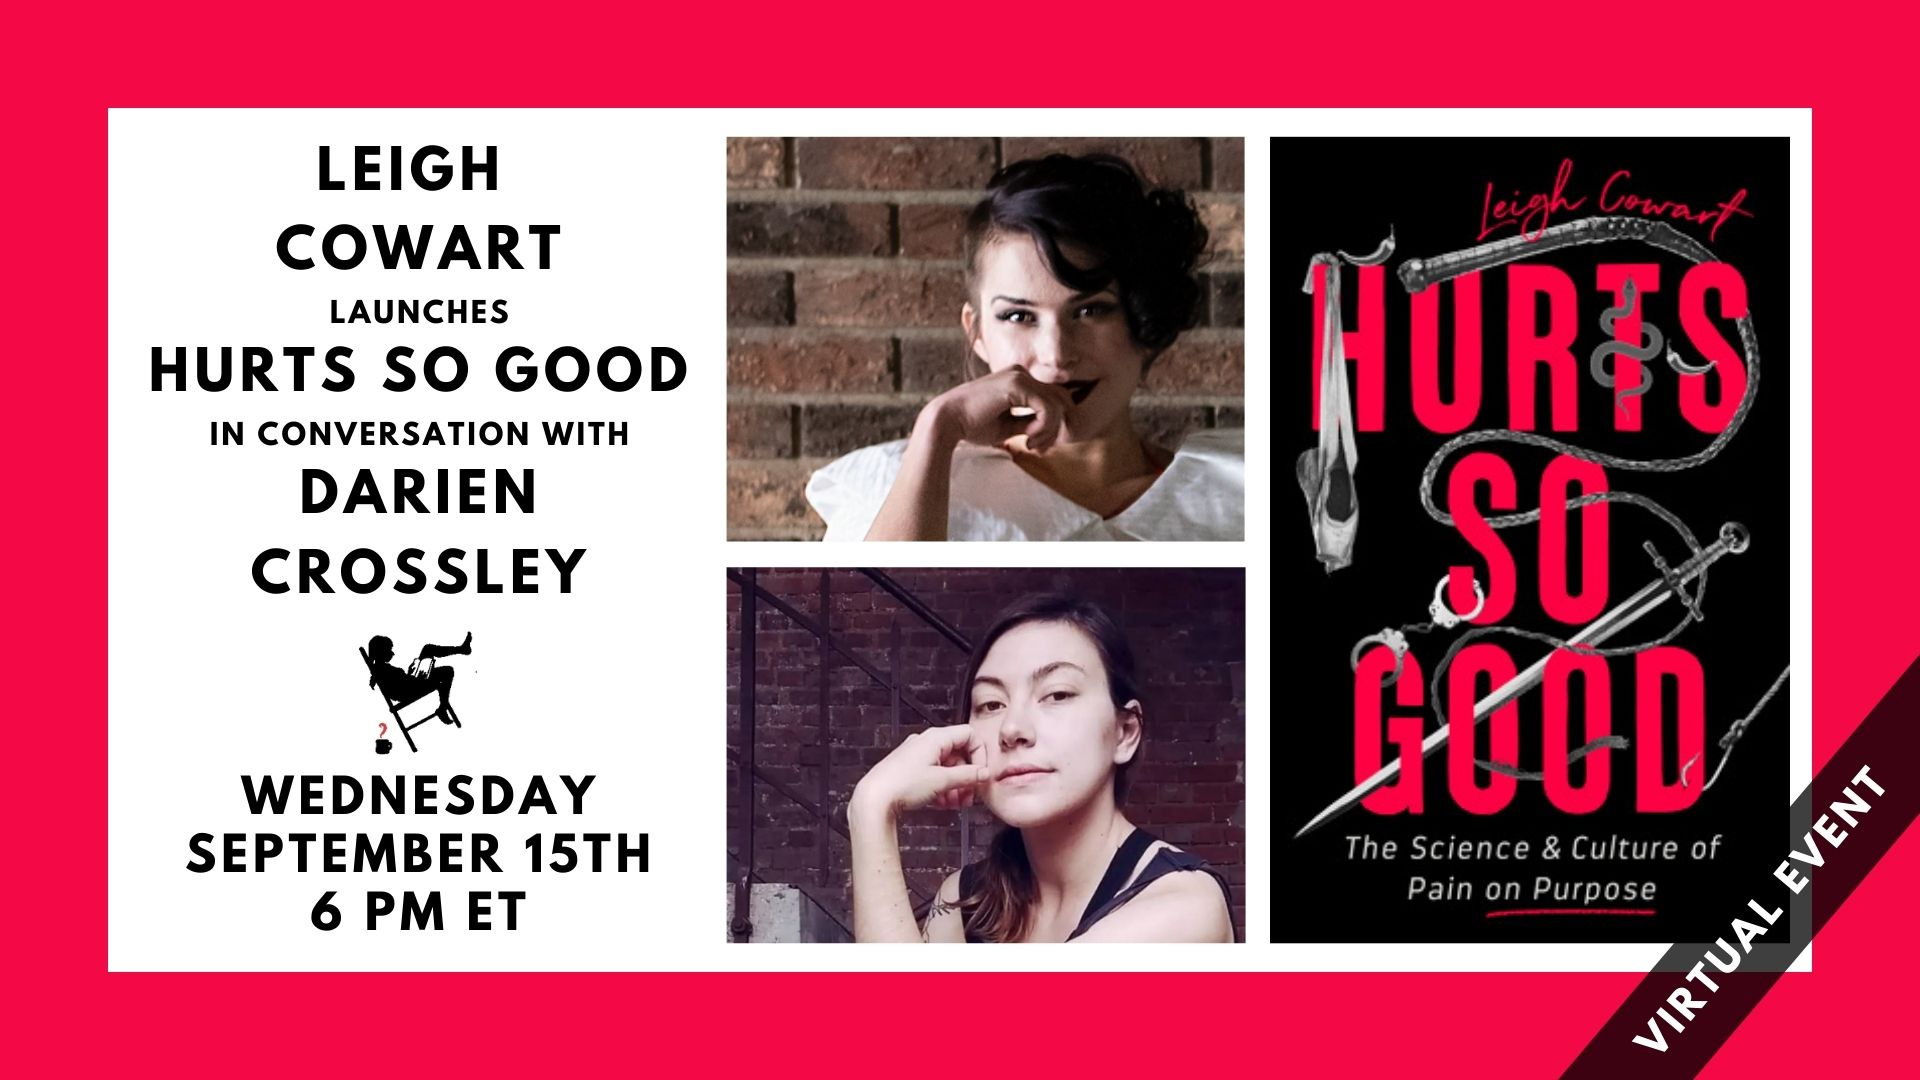 Leigh Cowart (photo shown) Launches HURTS SO GOOD (book cover shown) in conversation with Darien Crossley (photo shown). Wednesday, September 15th, 6 PM ET.